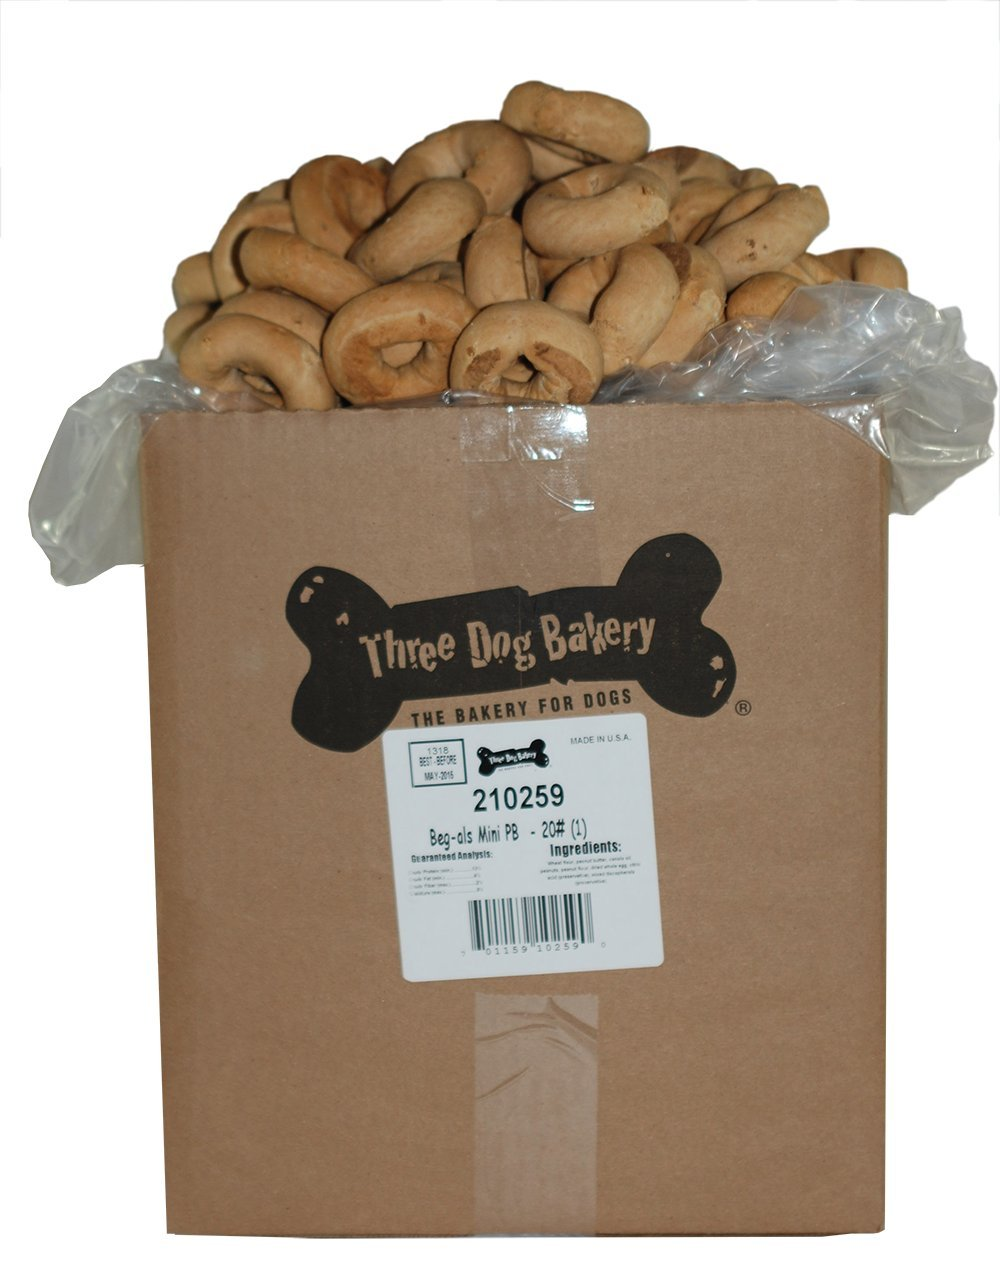 THREE DOG FOOD BAKERY 015105 Bagels Food for Pets, Mini, Peanut Butter, 20-Pound